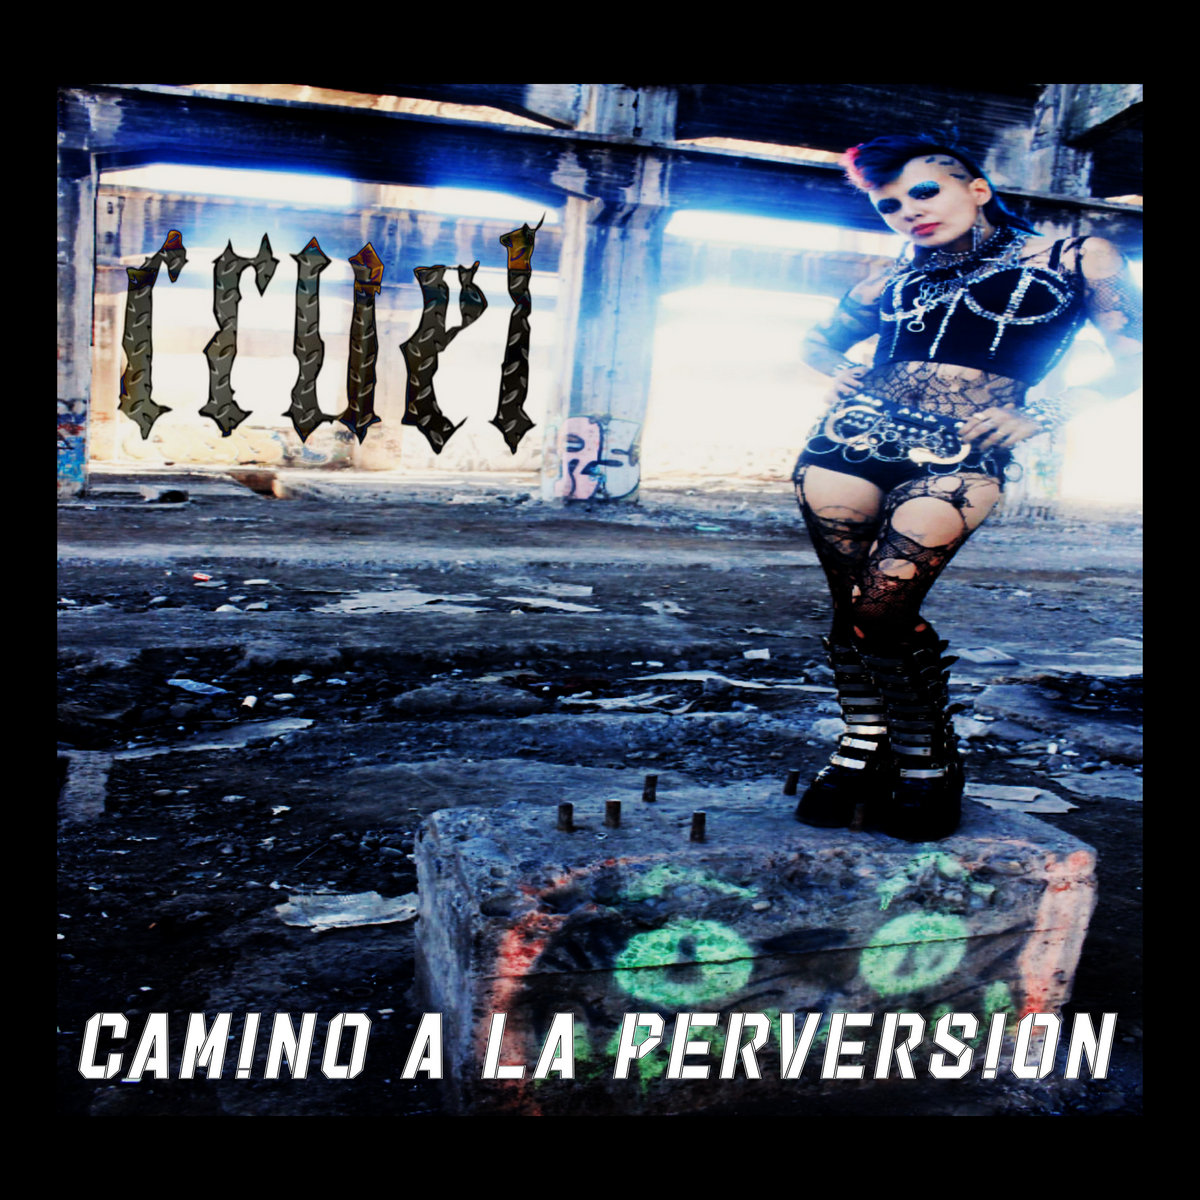 Camino a la perversion by CRUEL